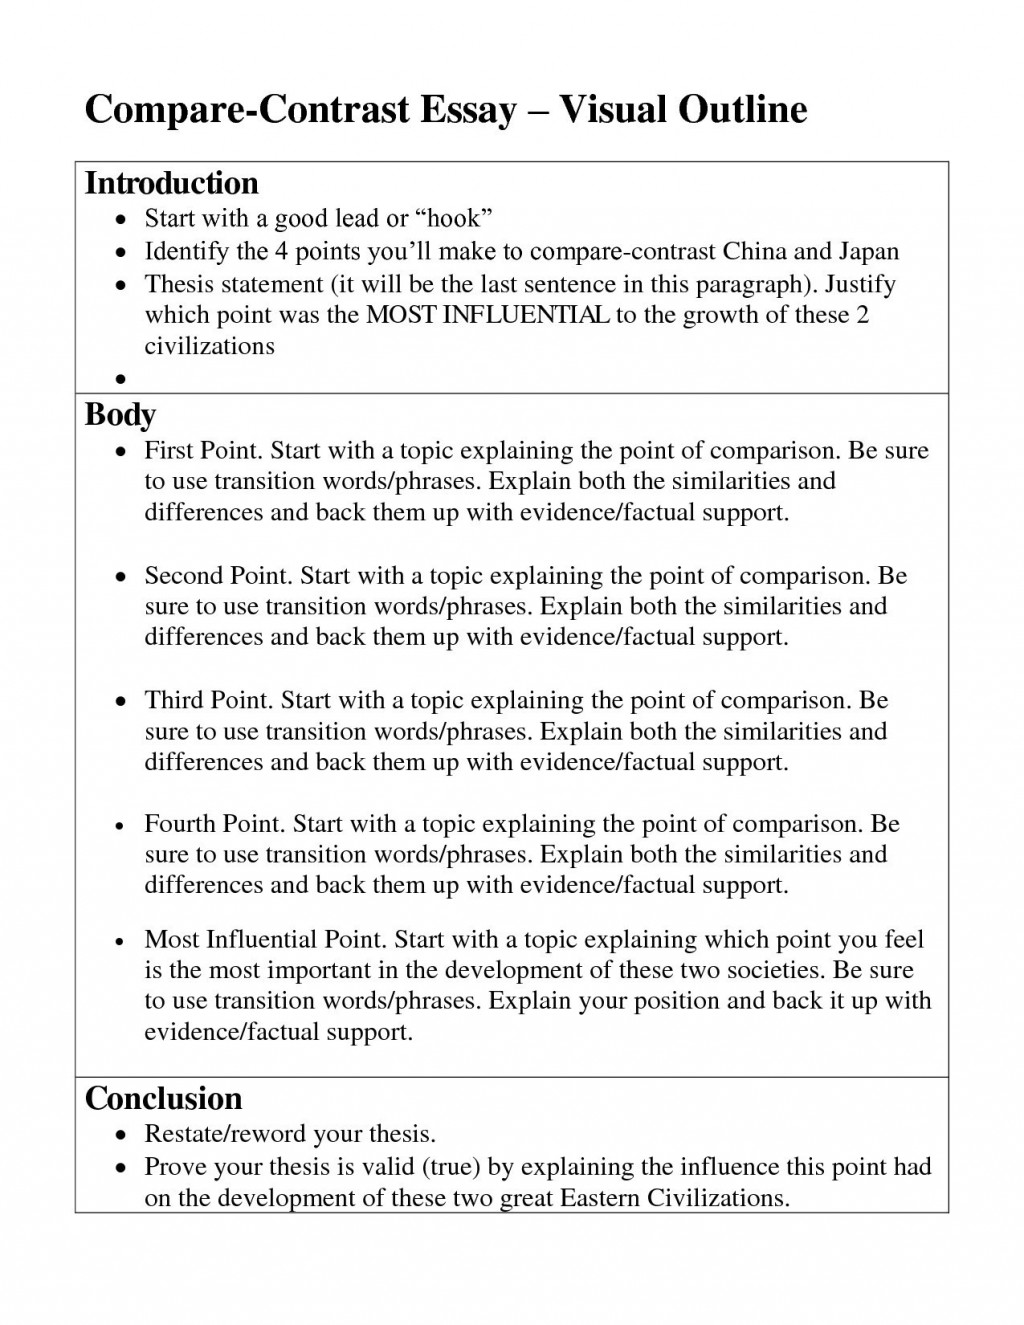 014 Good Hook For An Essay Writing Hooks Worksheet Refrence Laws Fresh How To Write Ess Argumentative Narrative The Best College Sentence Informative About Yourself Impressive A Examples Of On Kill Mockingbird Music Large